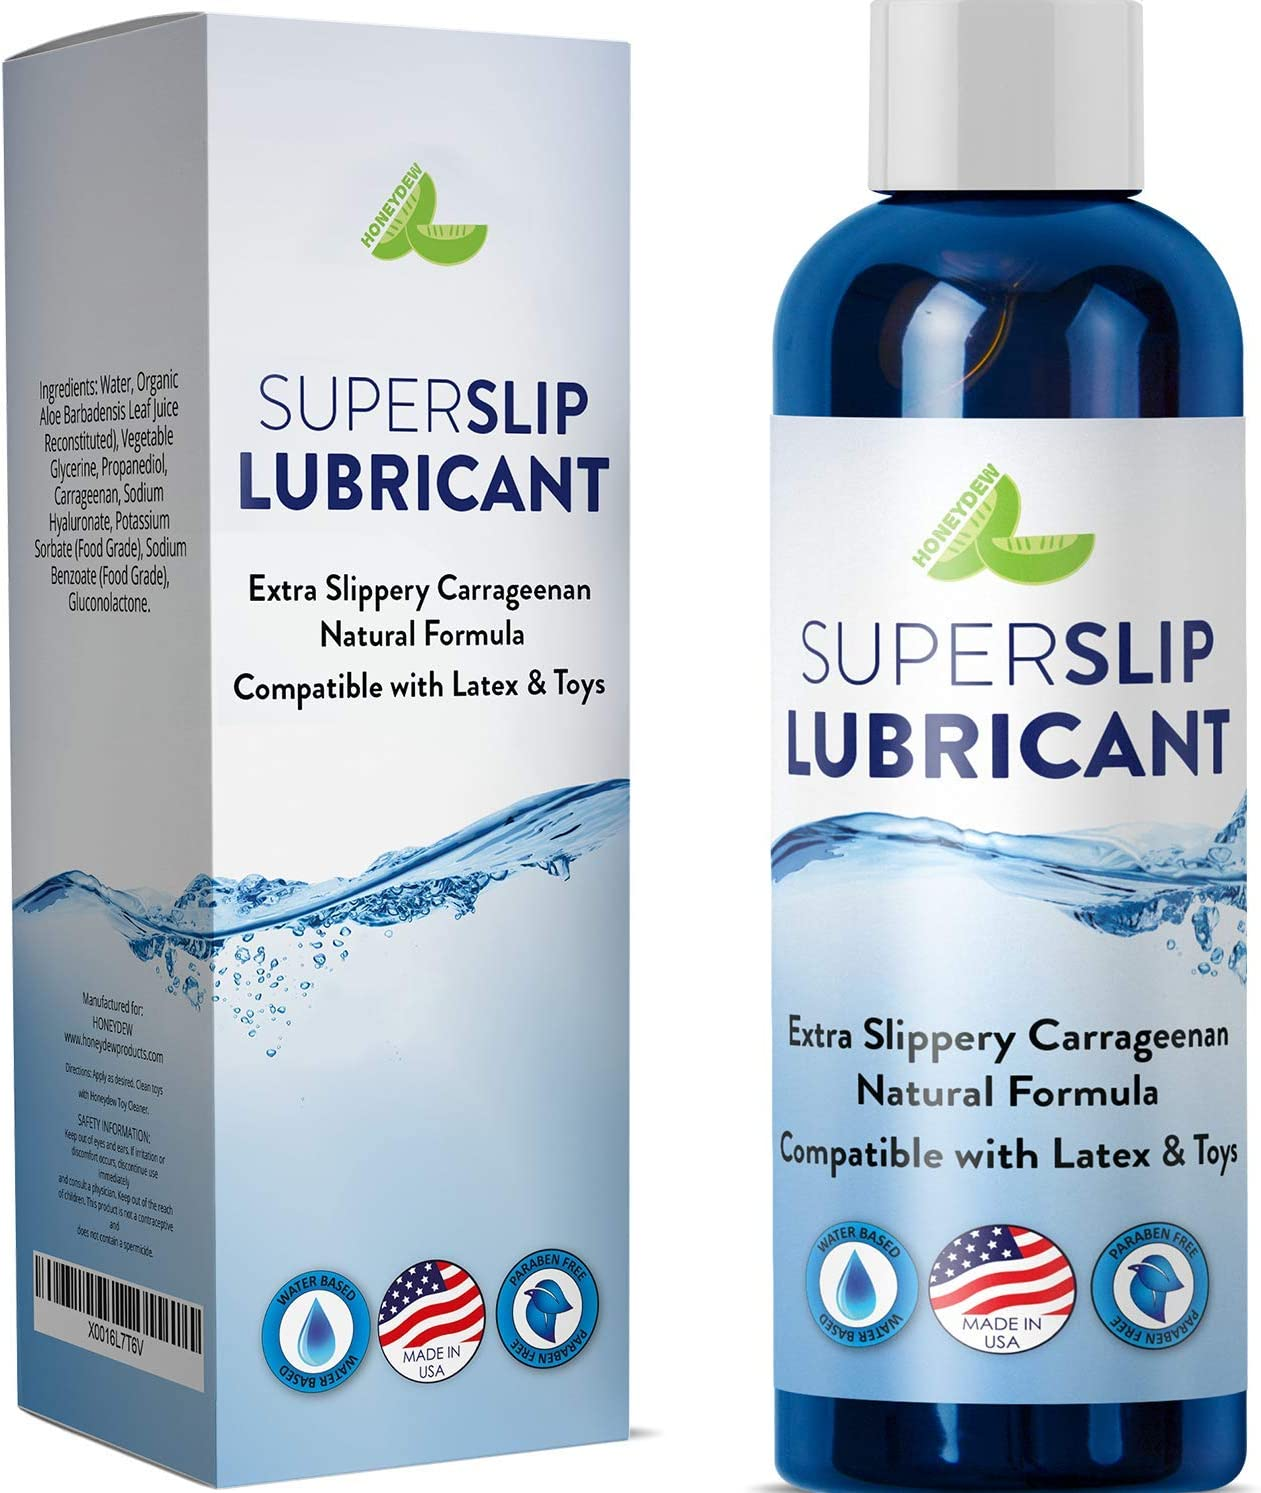 Natural Personal Lubricant - Water Based Sensitive Lube for Women and Men – Extra Emollient Super Slip Lubricant with Carrageenan and Aloe Natural Formula - PH Balanced - Silicone Free - 4oz